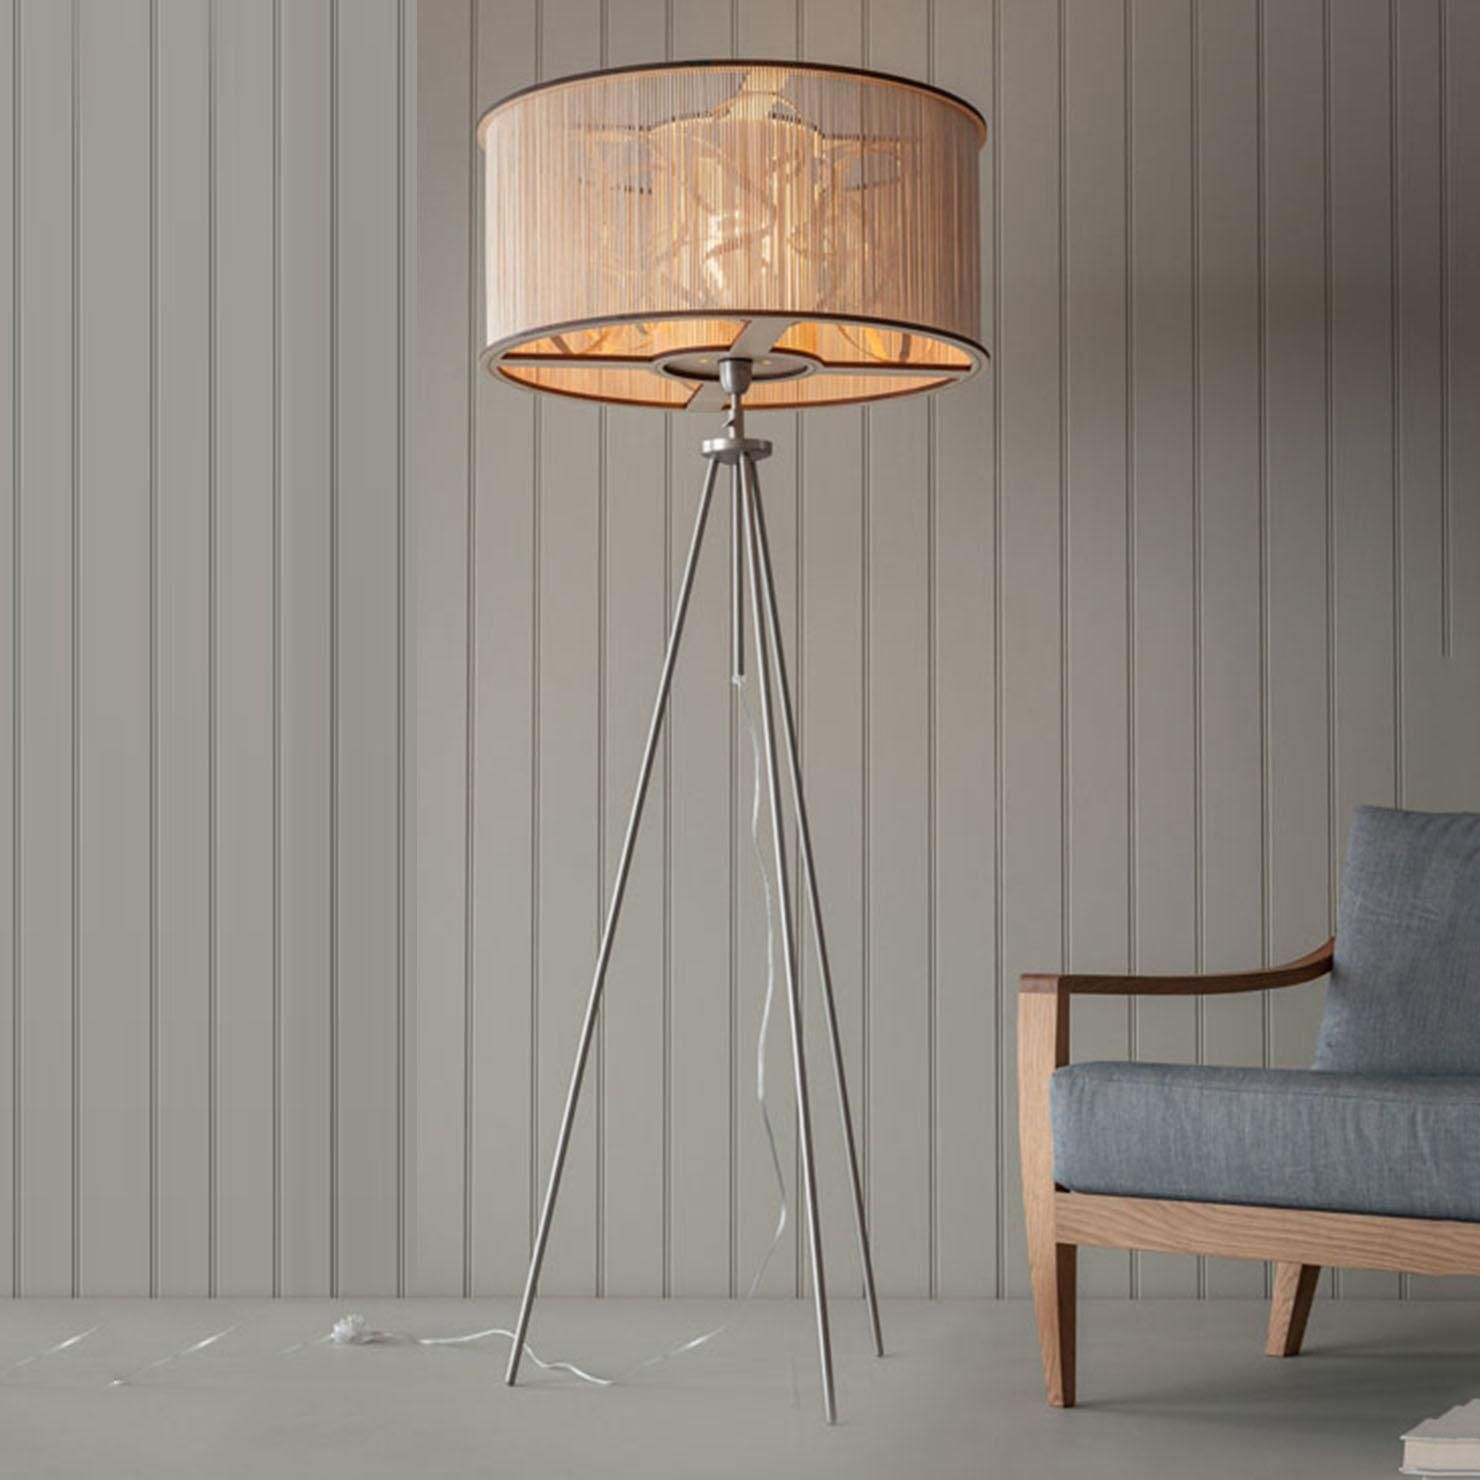 Tom Raffield Large Cage Floor Light Achica Large Floor Lamp Wooden Floor Lamps Floor Standing Lamps